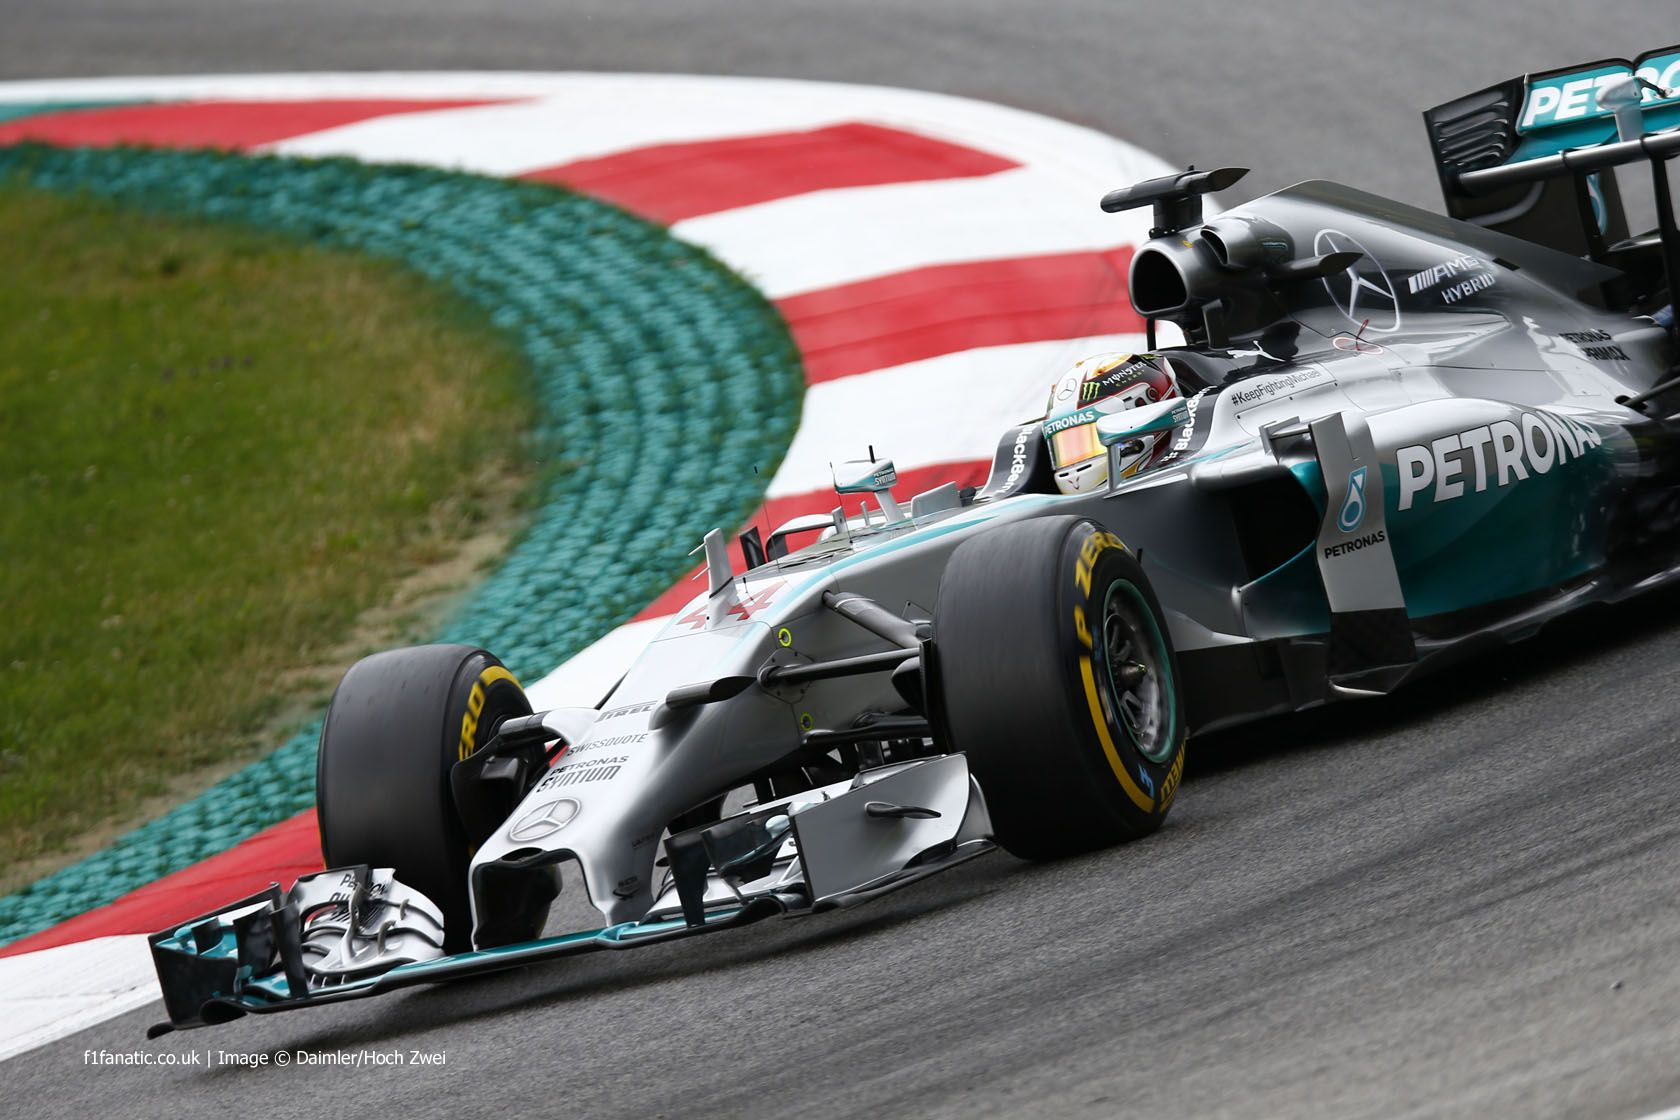 Lewis Hamilton, Mercedes, Red Bull Ring, Friday practice, 2014